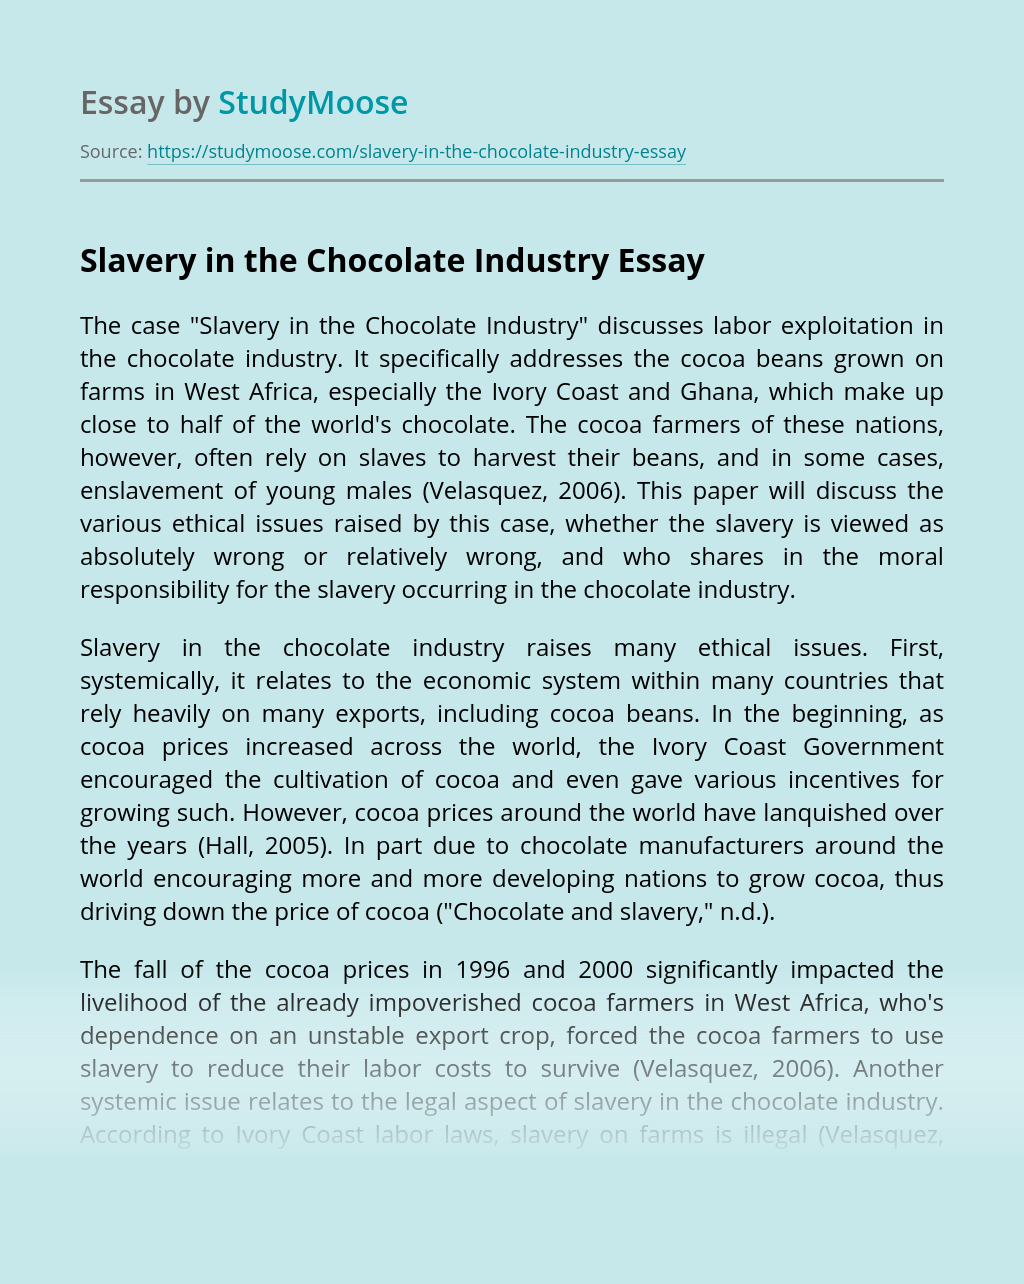 Slavery in the Chocolate Industry